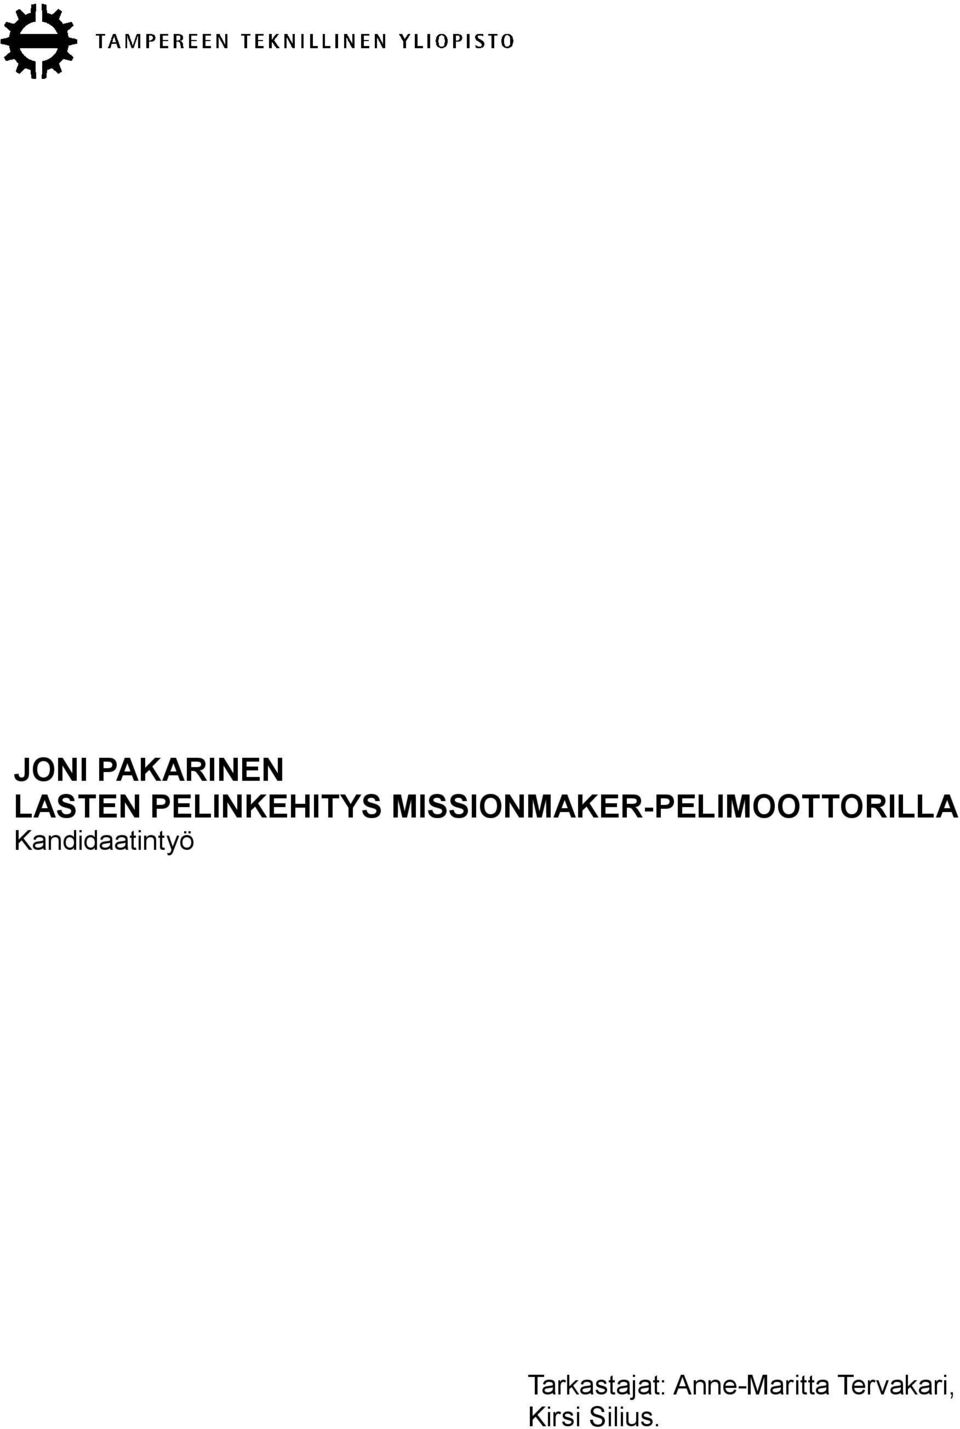 MISSIONMAKER-PELIMOOTTORILLA